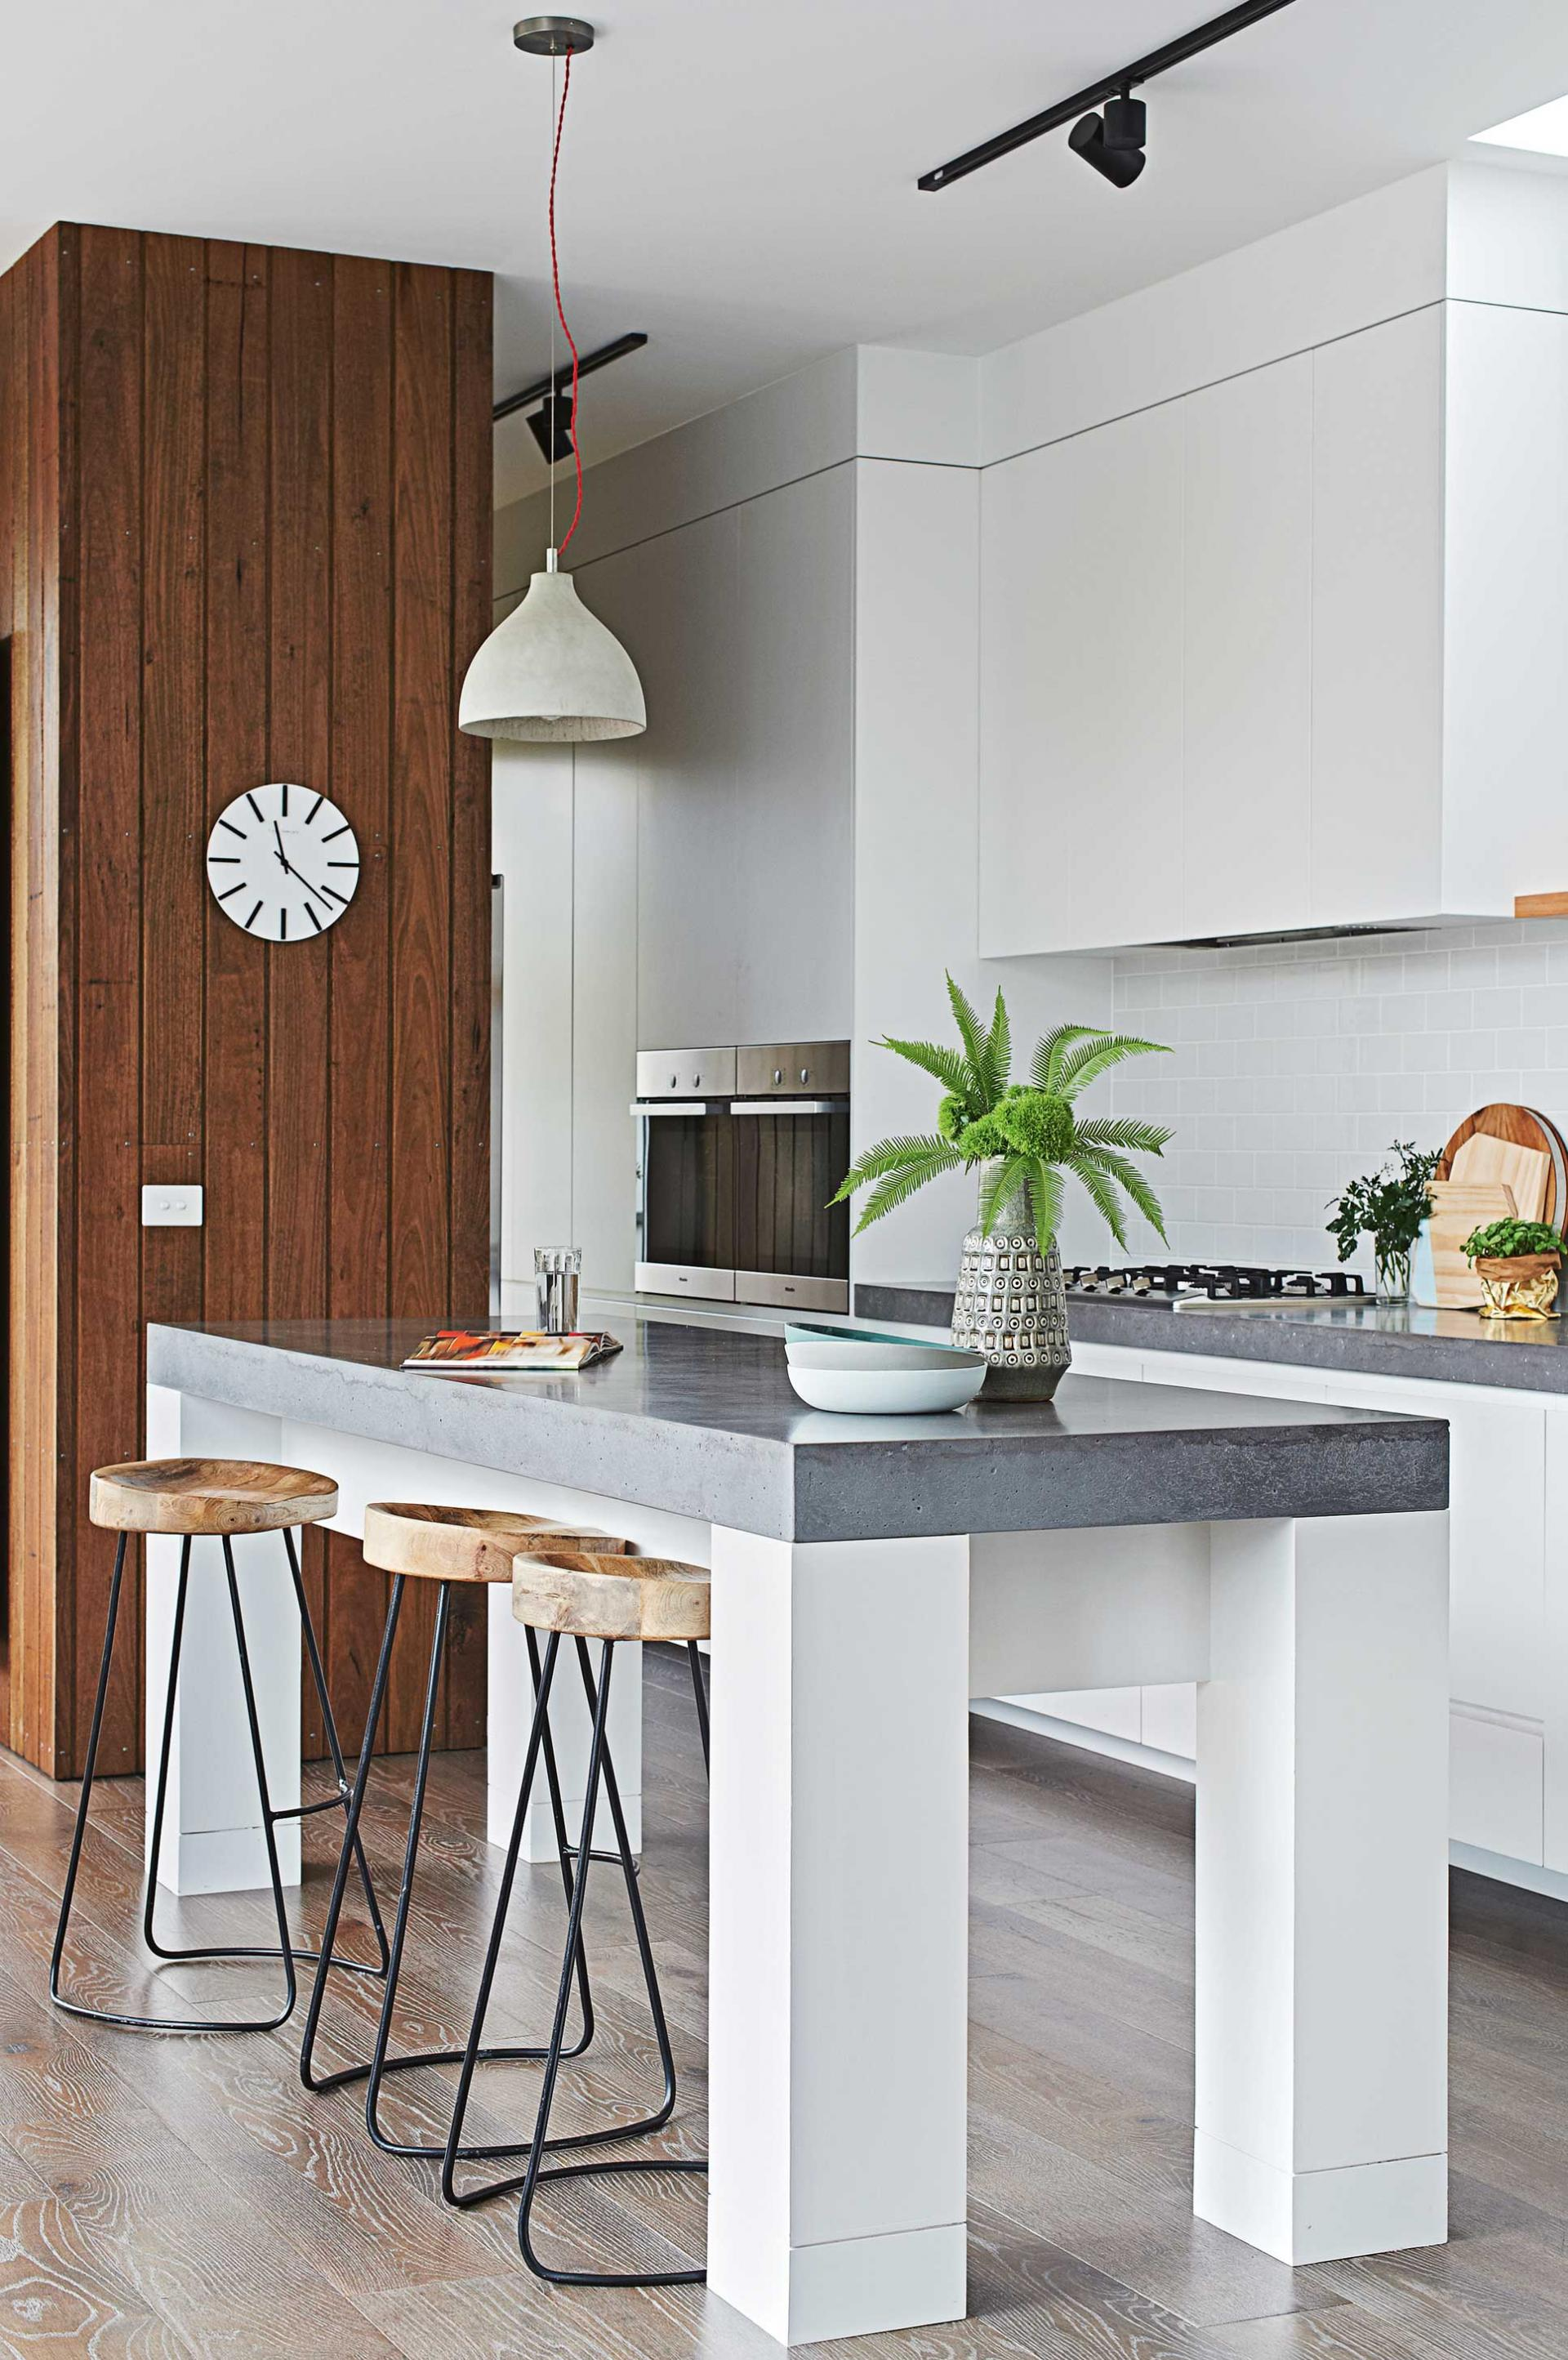 white-kitchen-orson-and-black-stools-concrete-bench-top-july14-20150903120233-q75,dx1920y-u1r1g0,c--